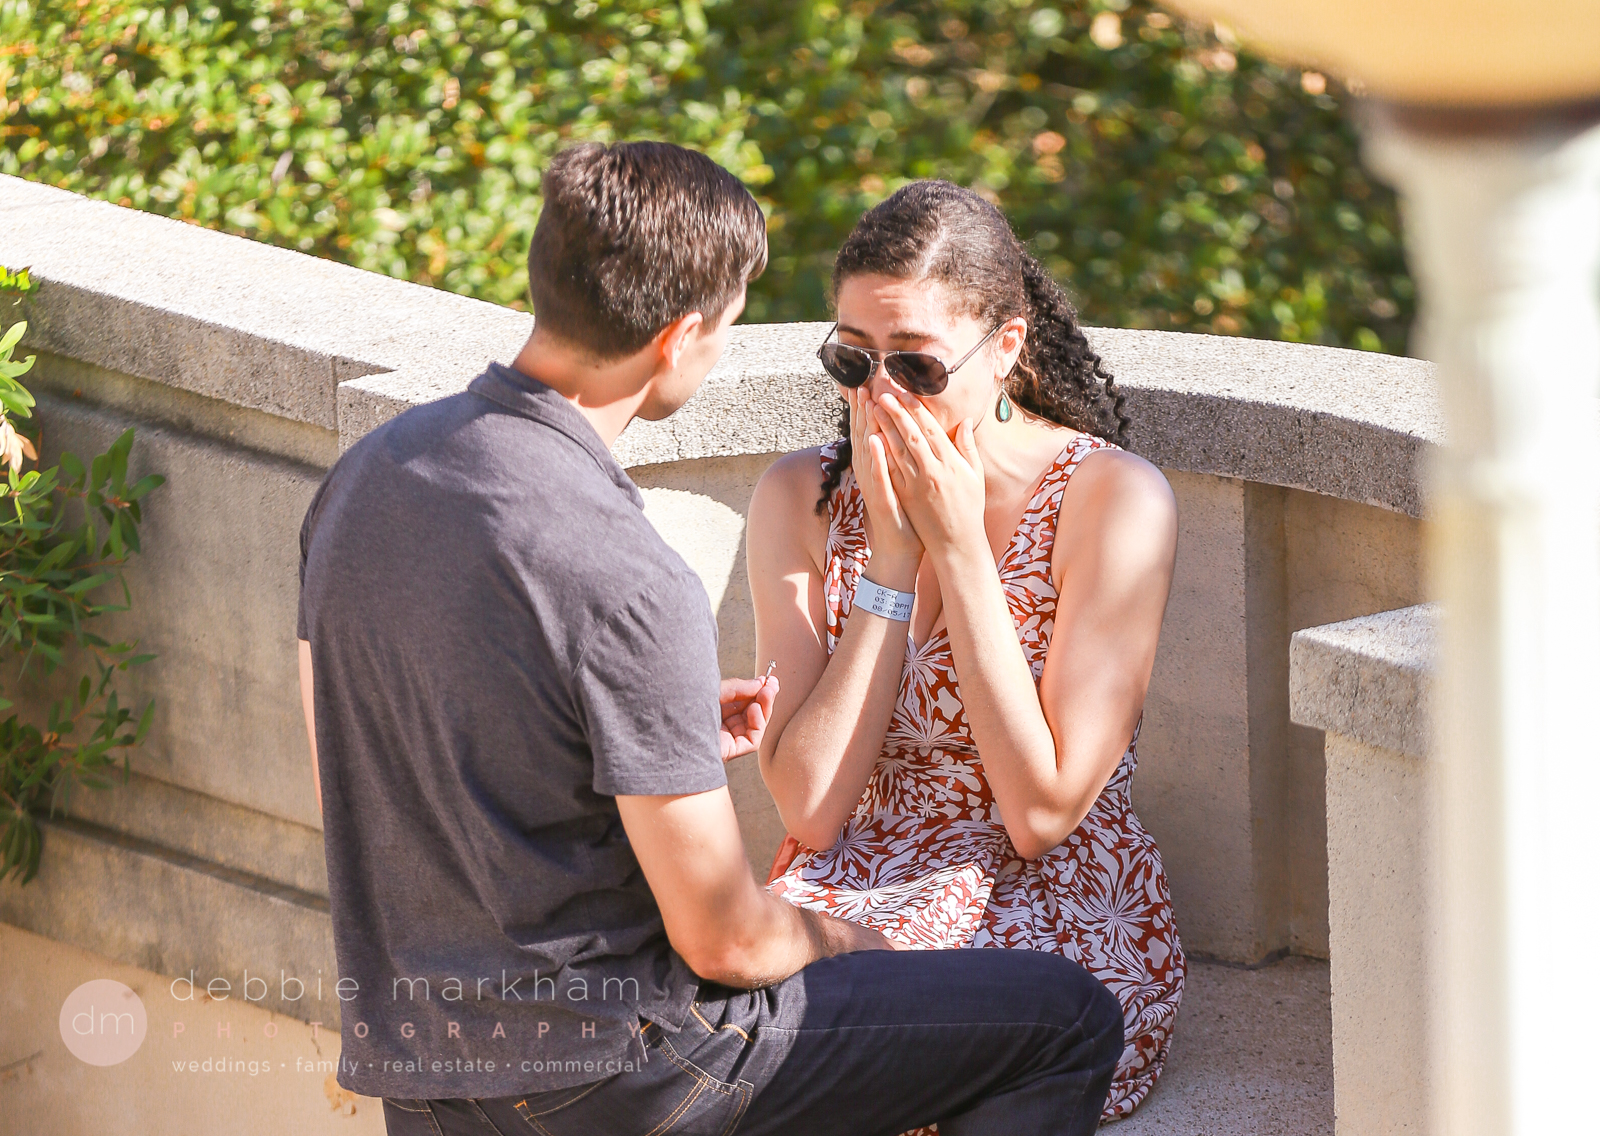 Unique Marriage Proposal Idea - at Hearst Castle